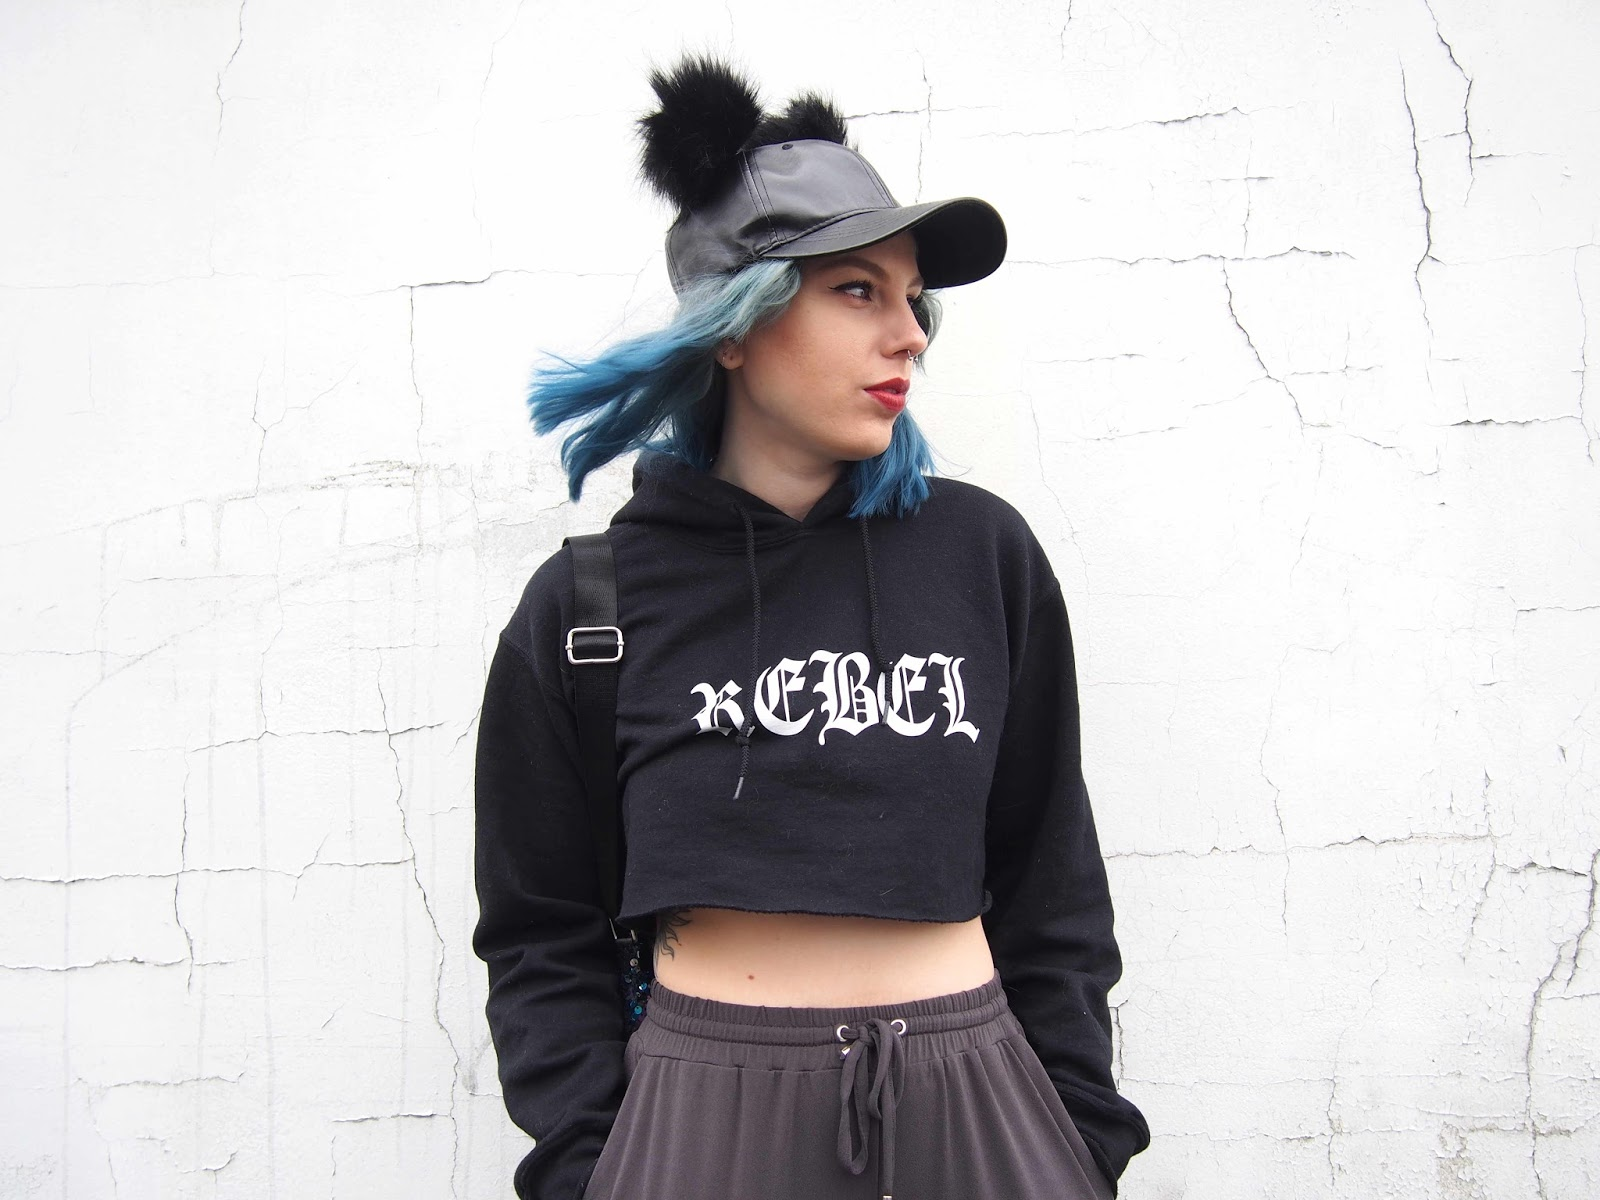 how to style joggers, outfits with joggers, jogger outfits, cropped hoodie, black cropped hoodie, black pom pom hat, hat with pom pom, sequin bag, sequin backpack, pom pom hat